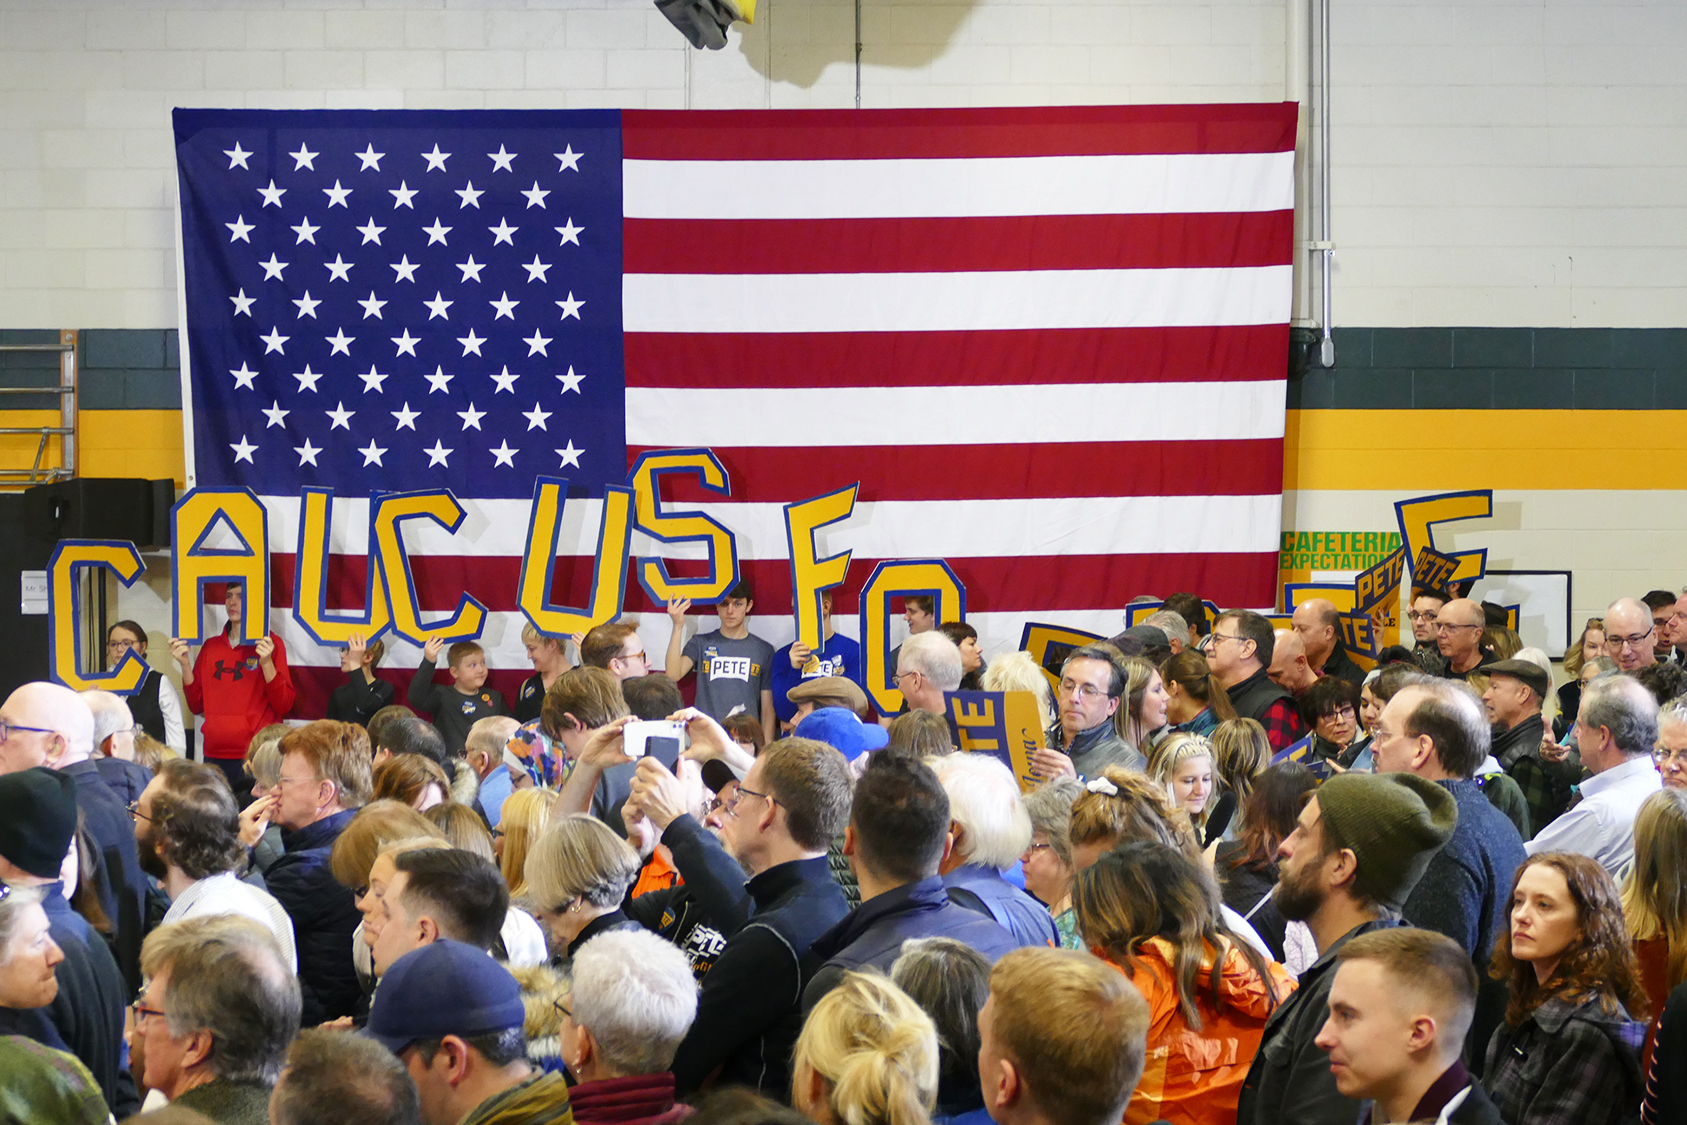 Young voters at Buttigieg's rally. (Marissa Nelson, 14 East)